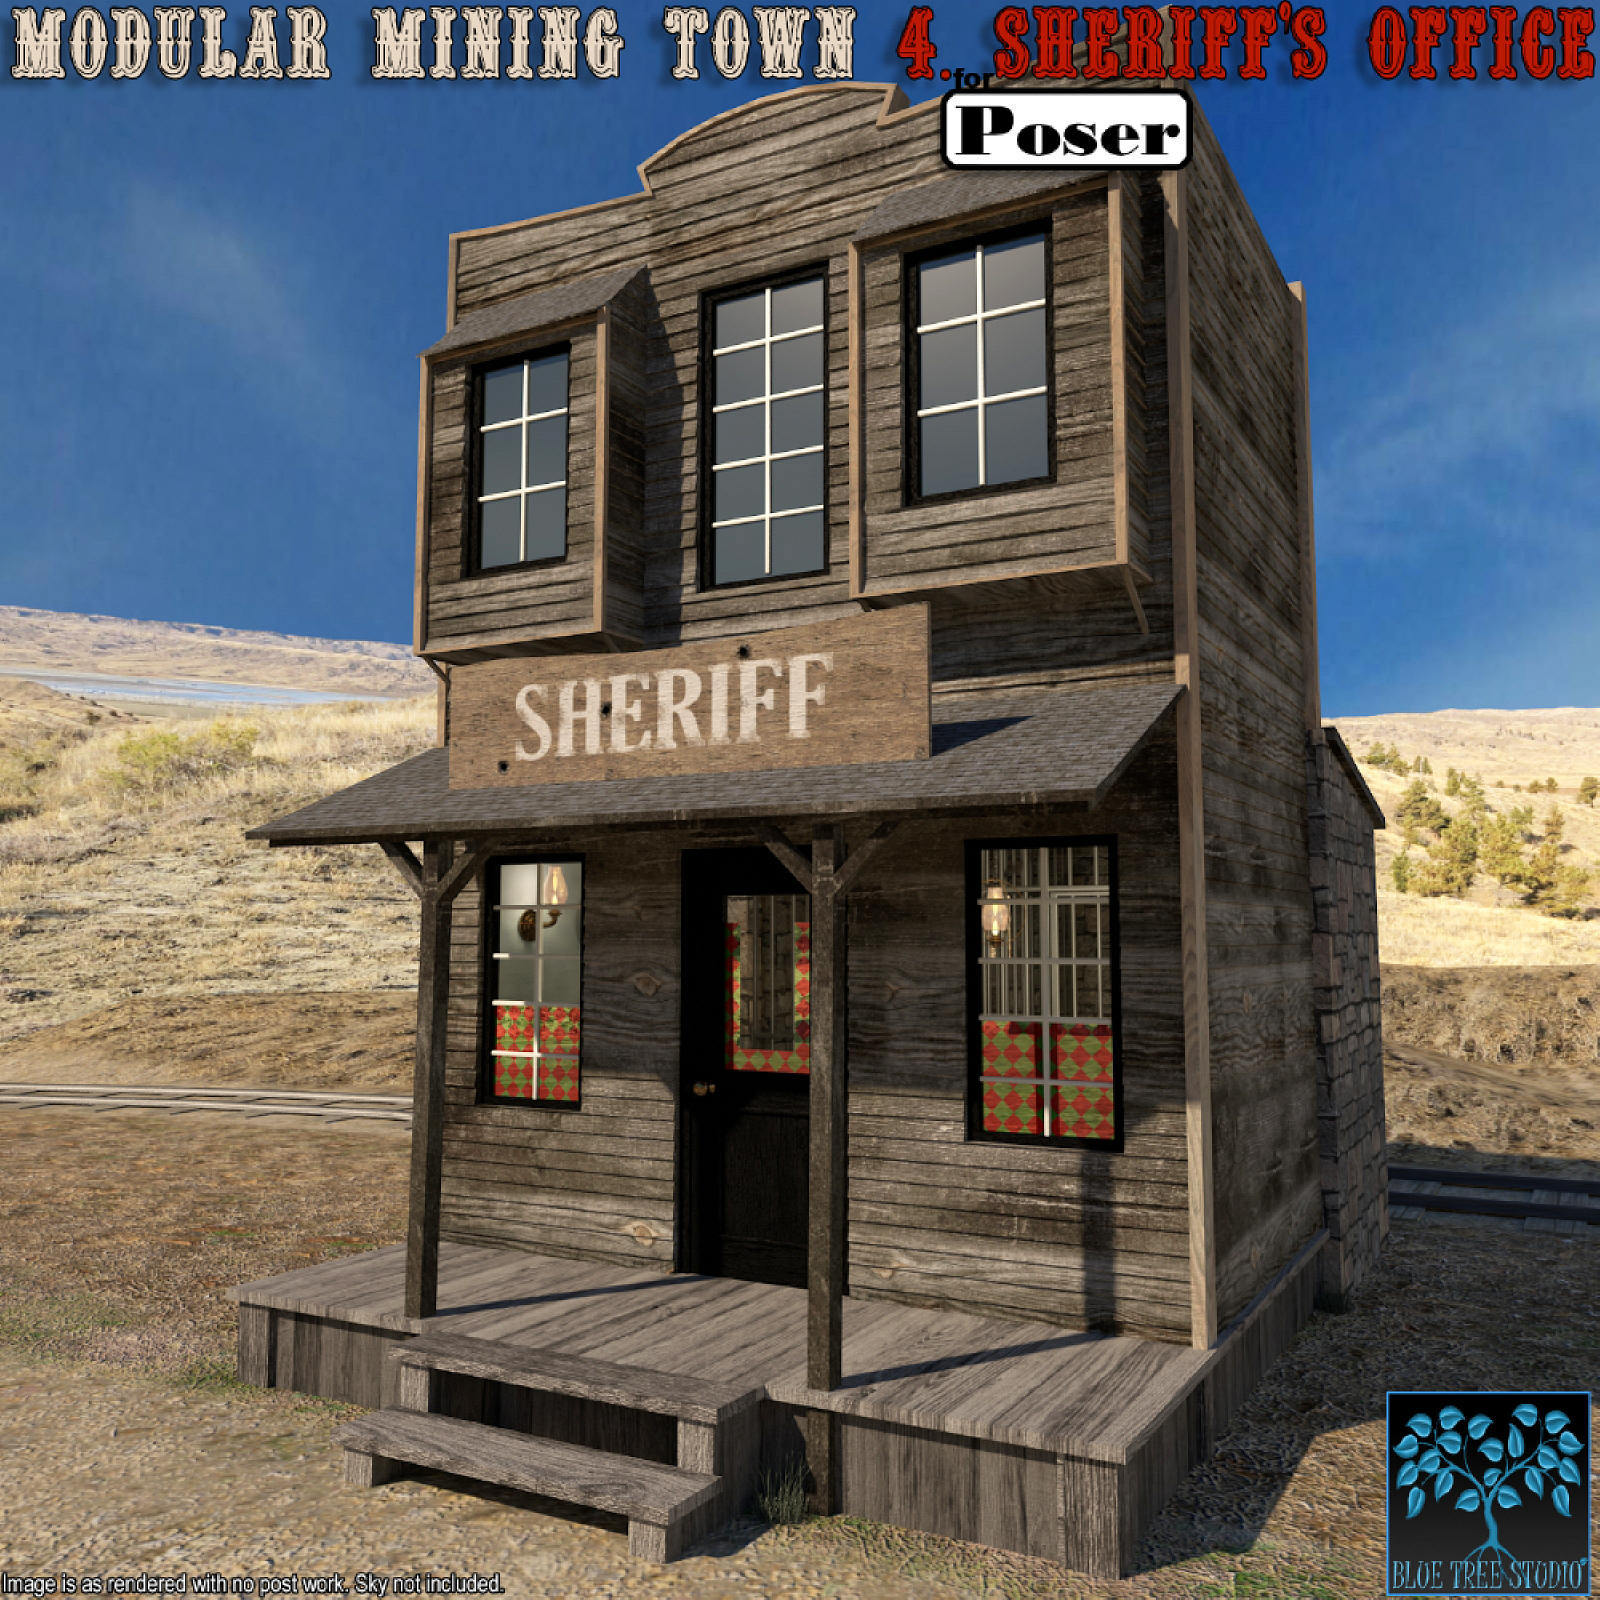 Modular Mining Town: 4. Sheriff's Office for Poser by BlueTreeStudio